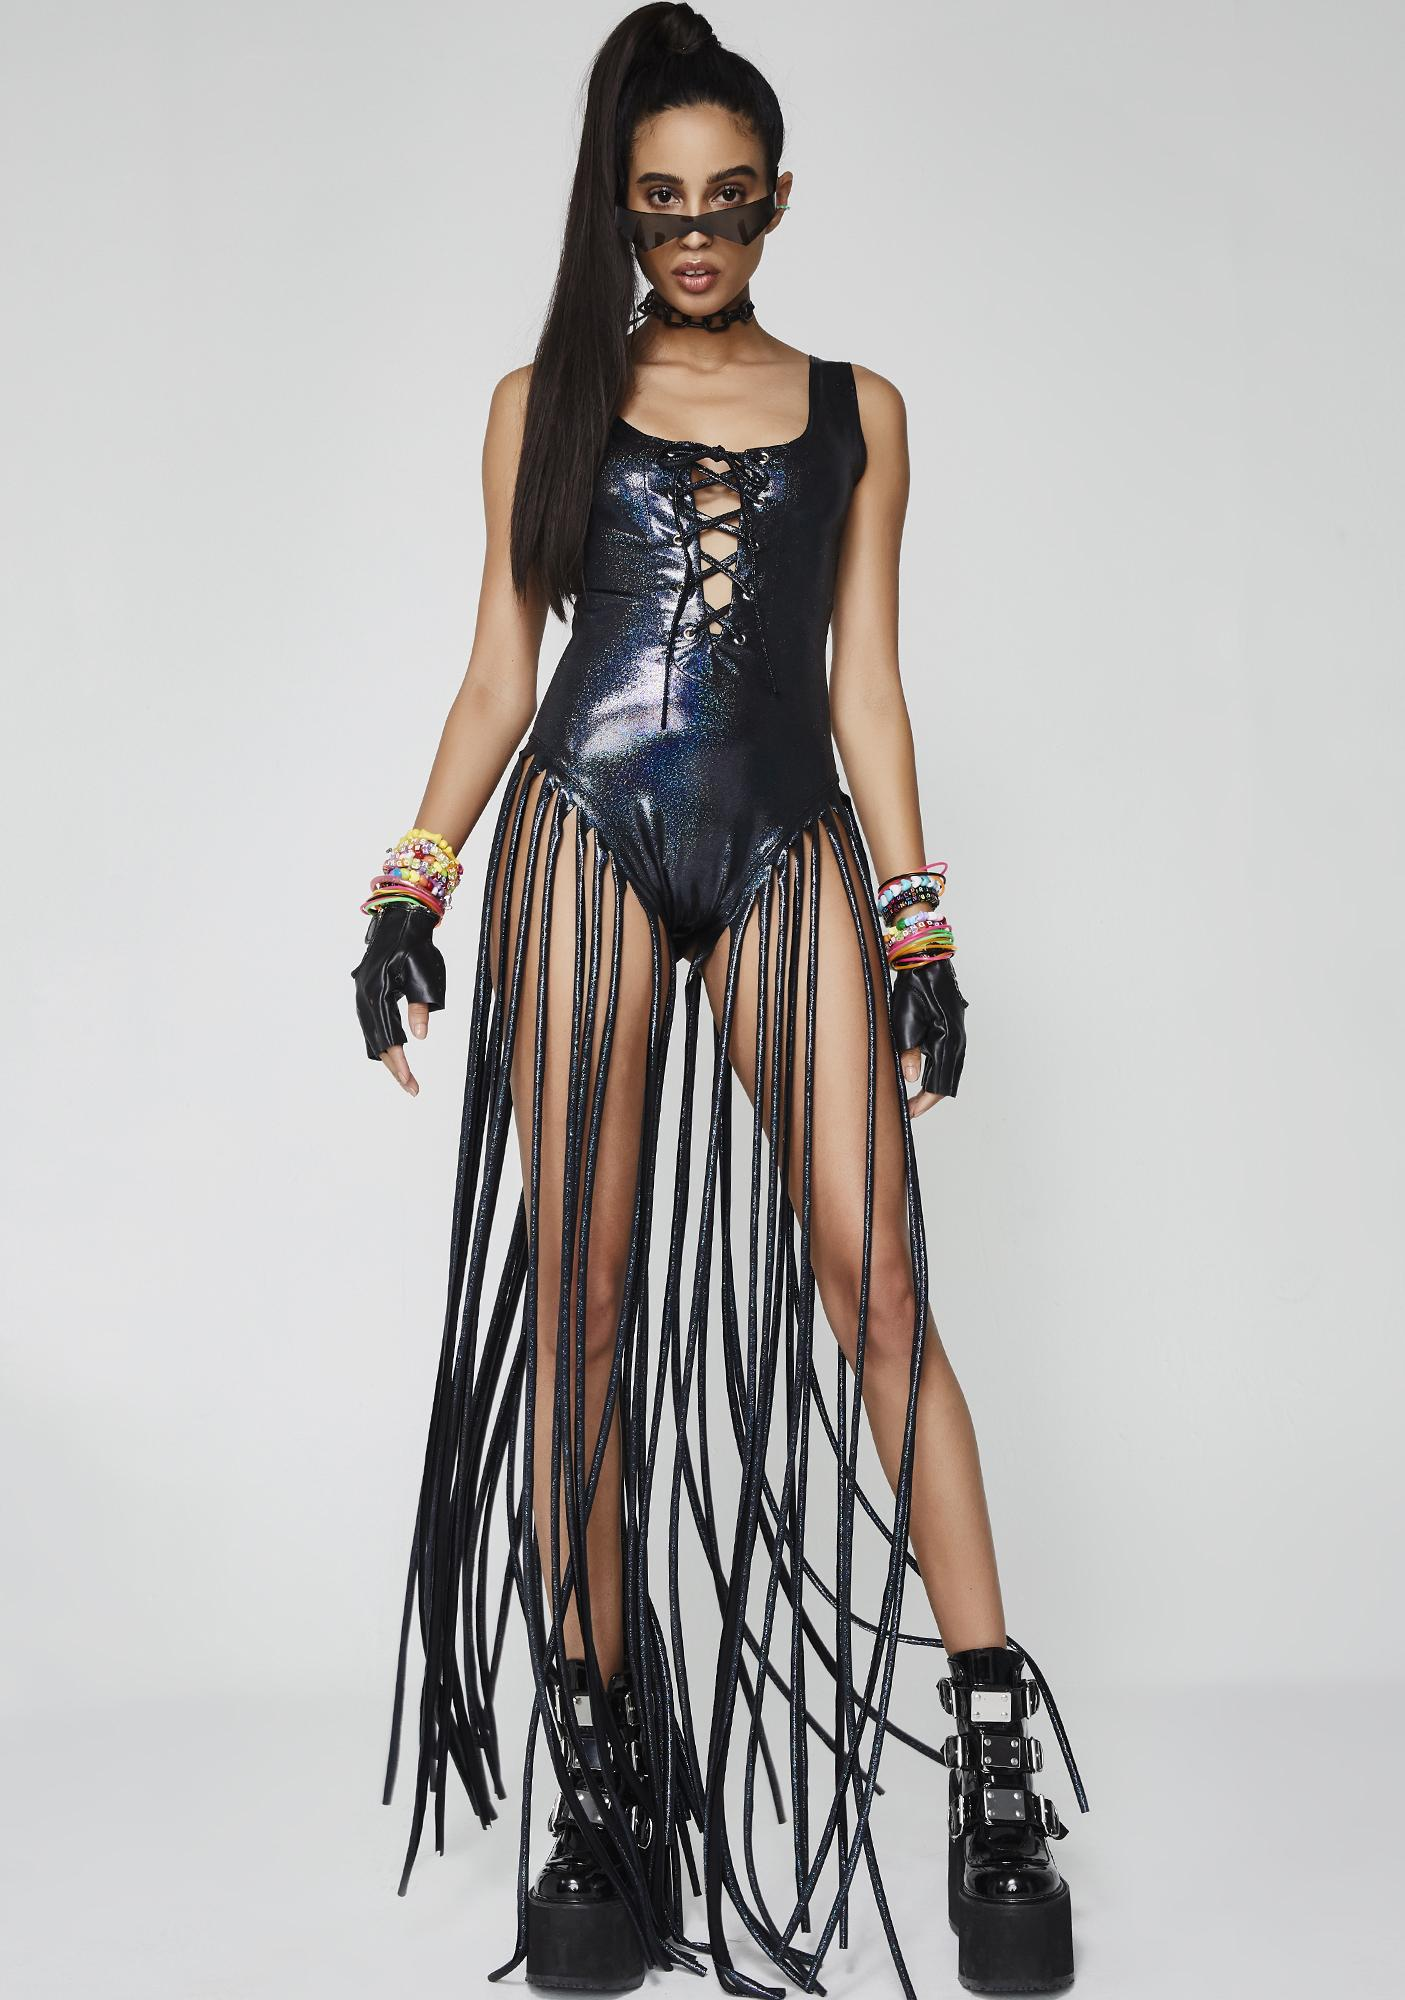 Cyber Sunrise Warrior Fringe Bodysuit